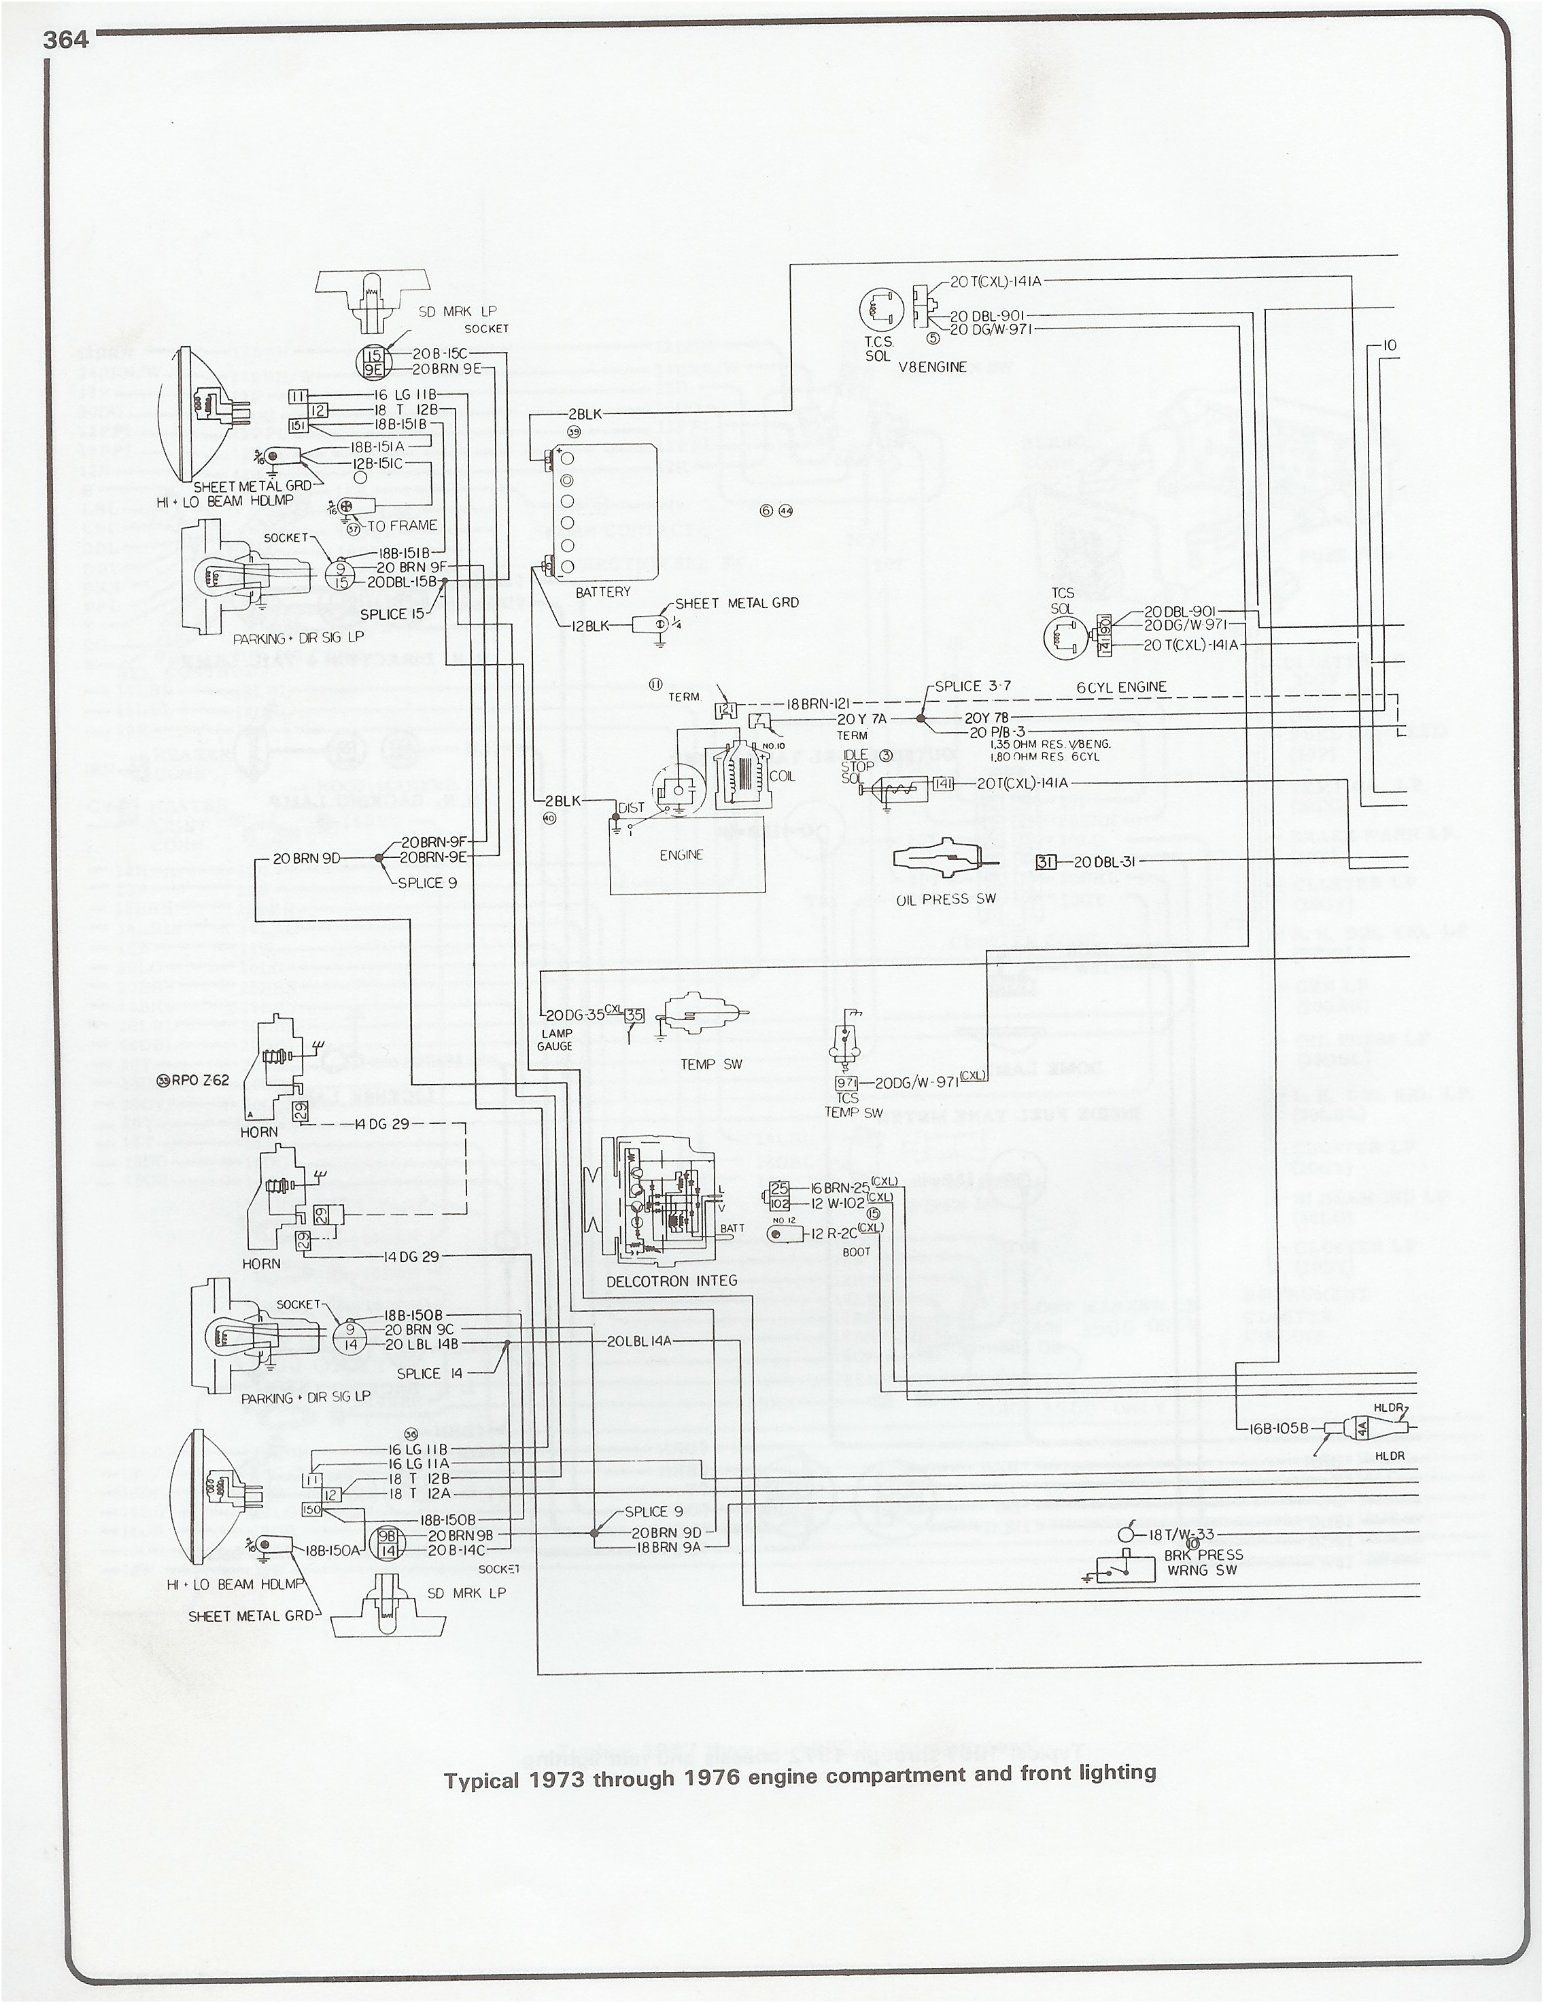 b46c0c014ab7ae7becc2b916945faf15 wiring diagram 1973 1976 chevy pickup chevy wiring diagram 1976 corvette wiring diagram at soozxer.org